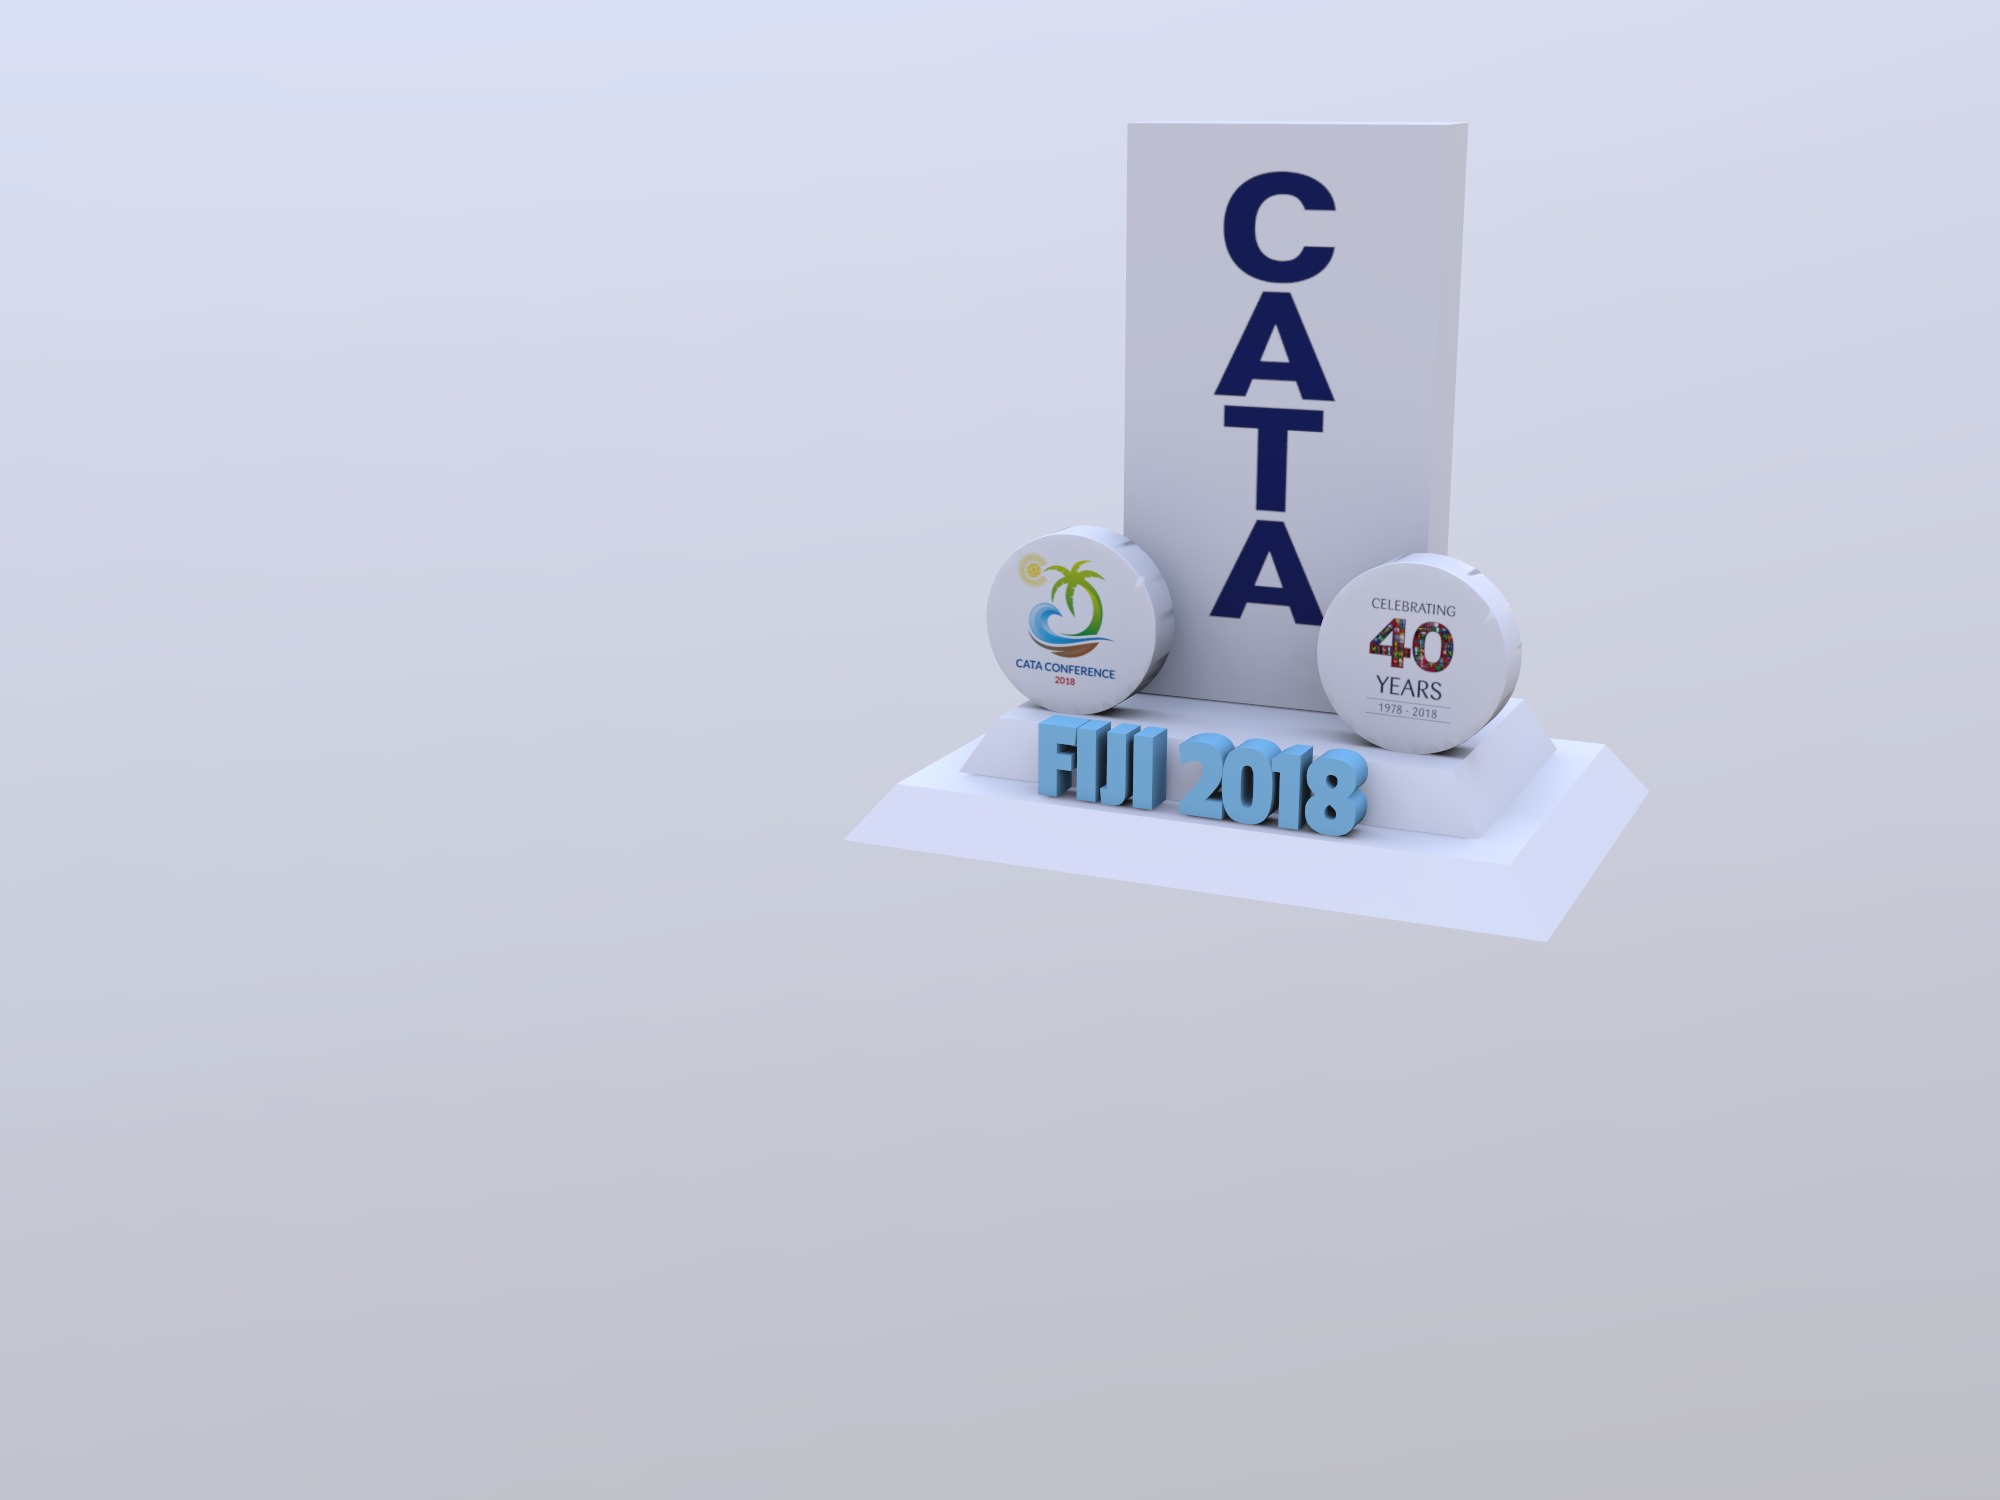 CATA Block (copy) (copy) - 3D design by George Mow Oct 18, 2018